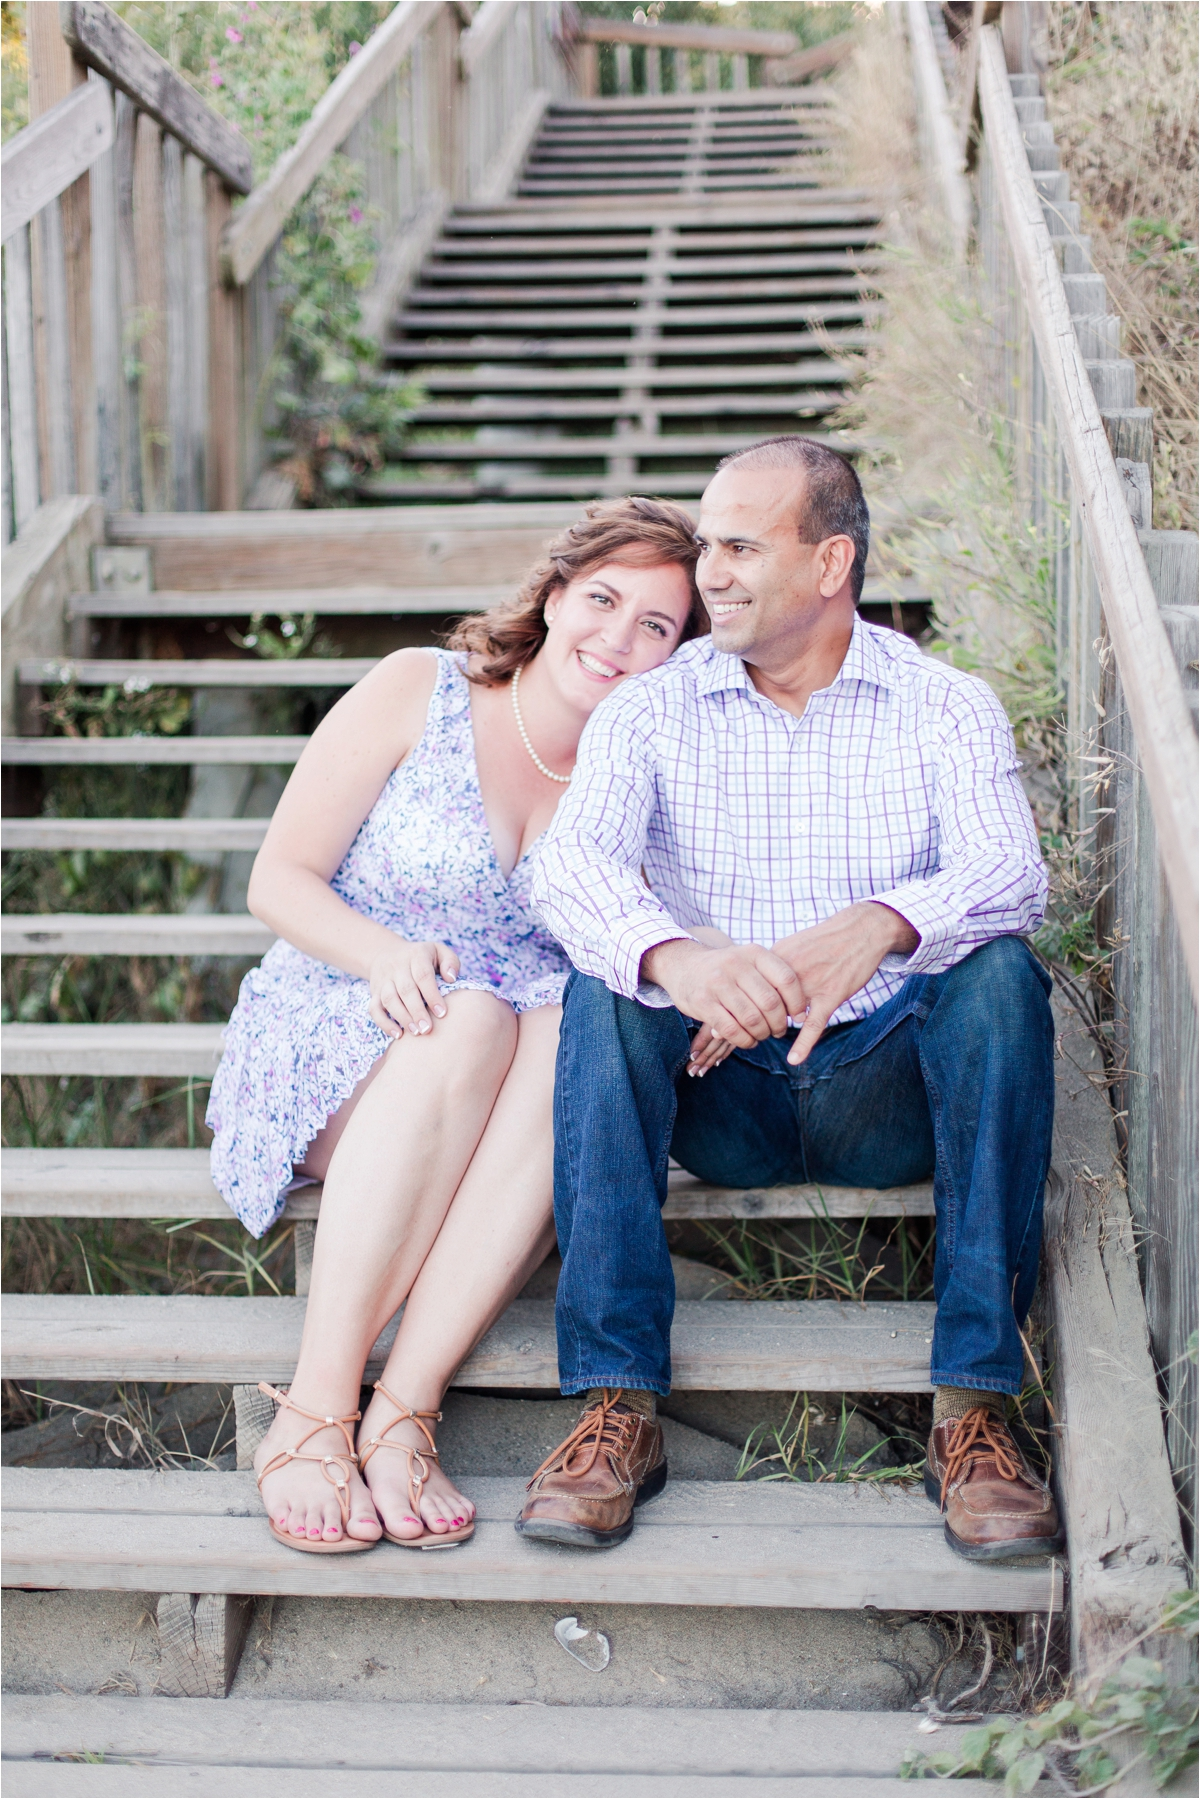 New Brighton beach engagement pictures by Briana Calderon Photography_0254.jpg